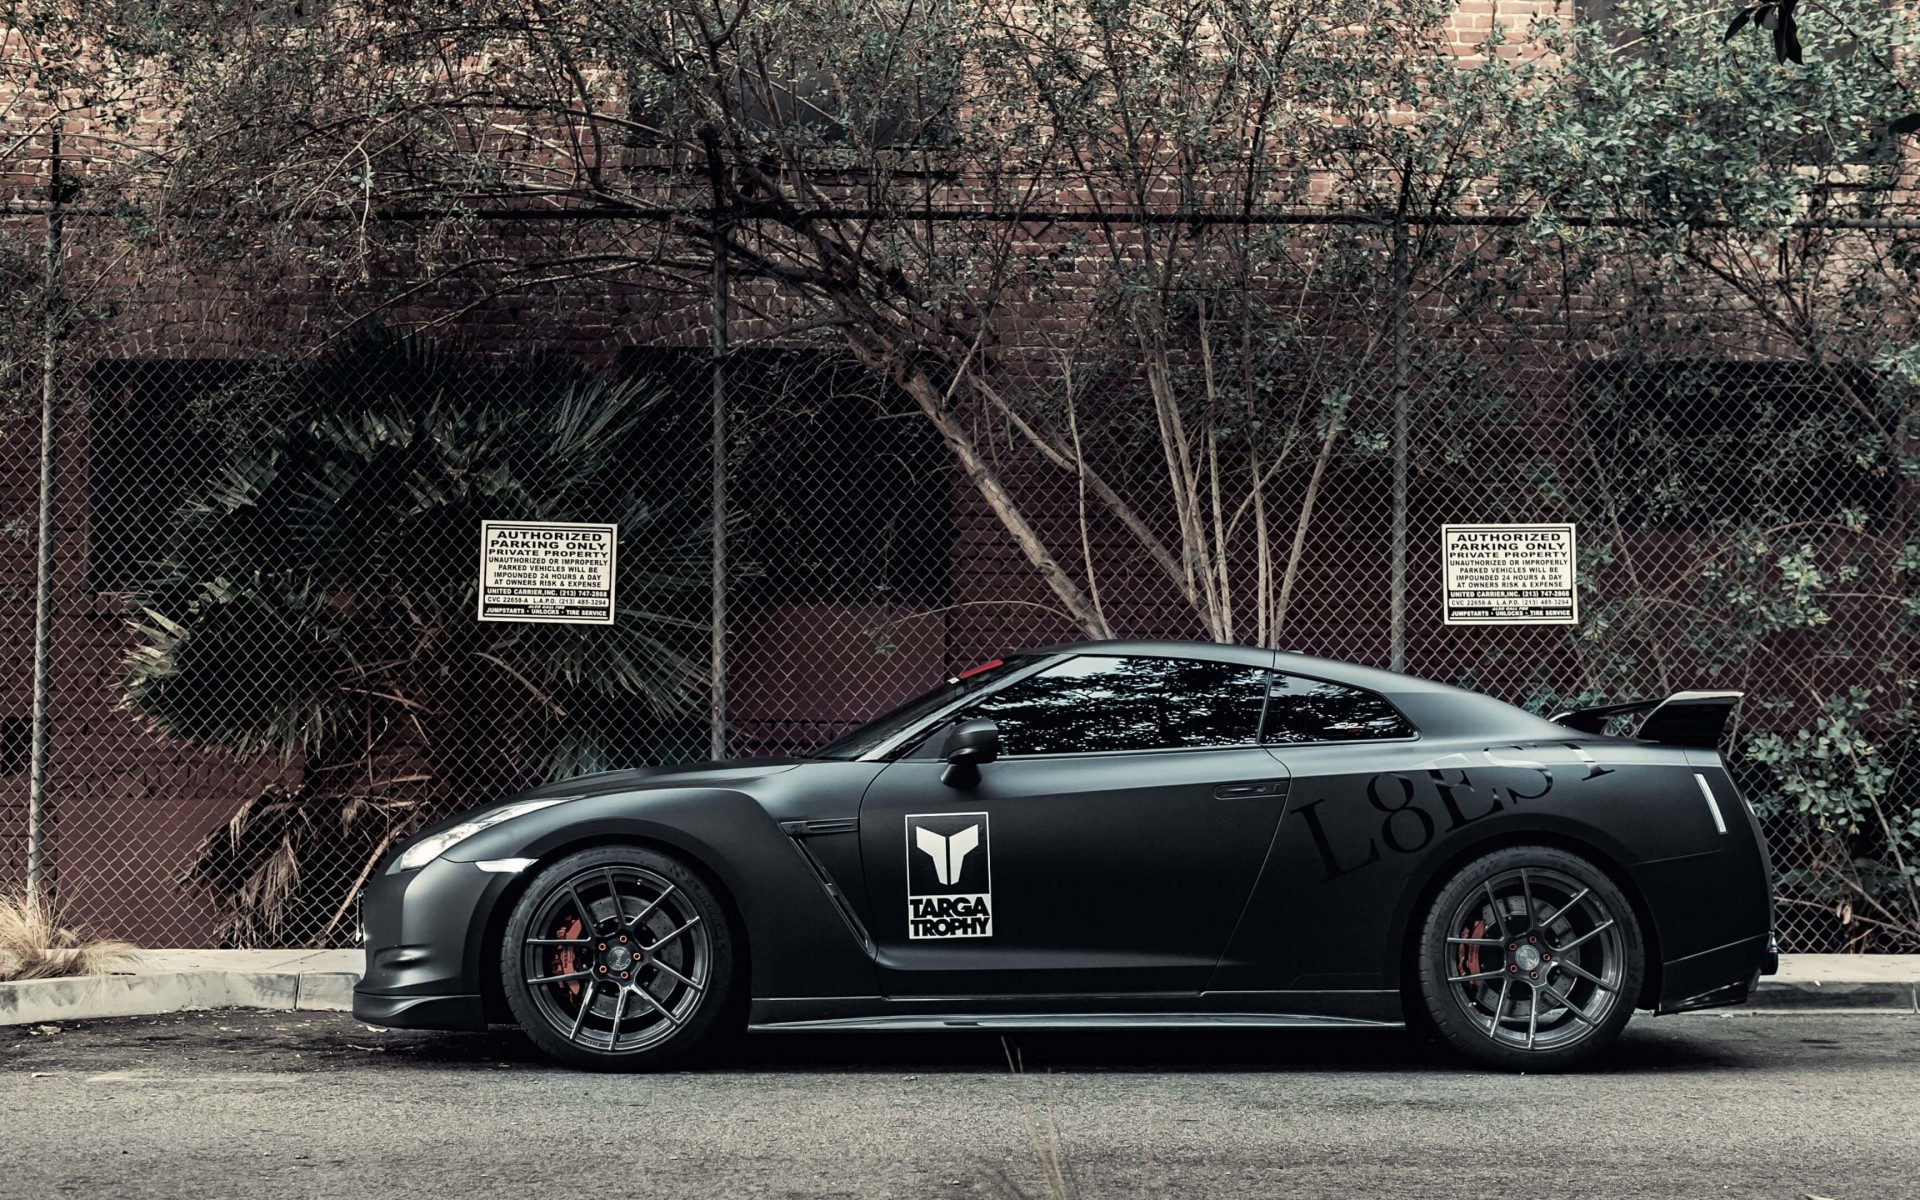 Download Nissan Gt R Black Edition Hd Wallpaper For 1920 X